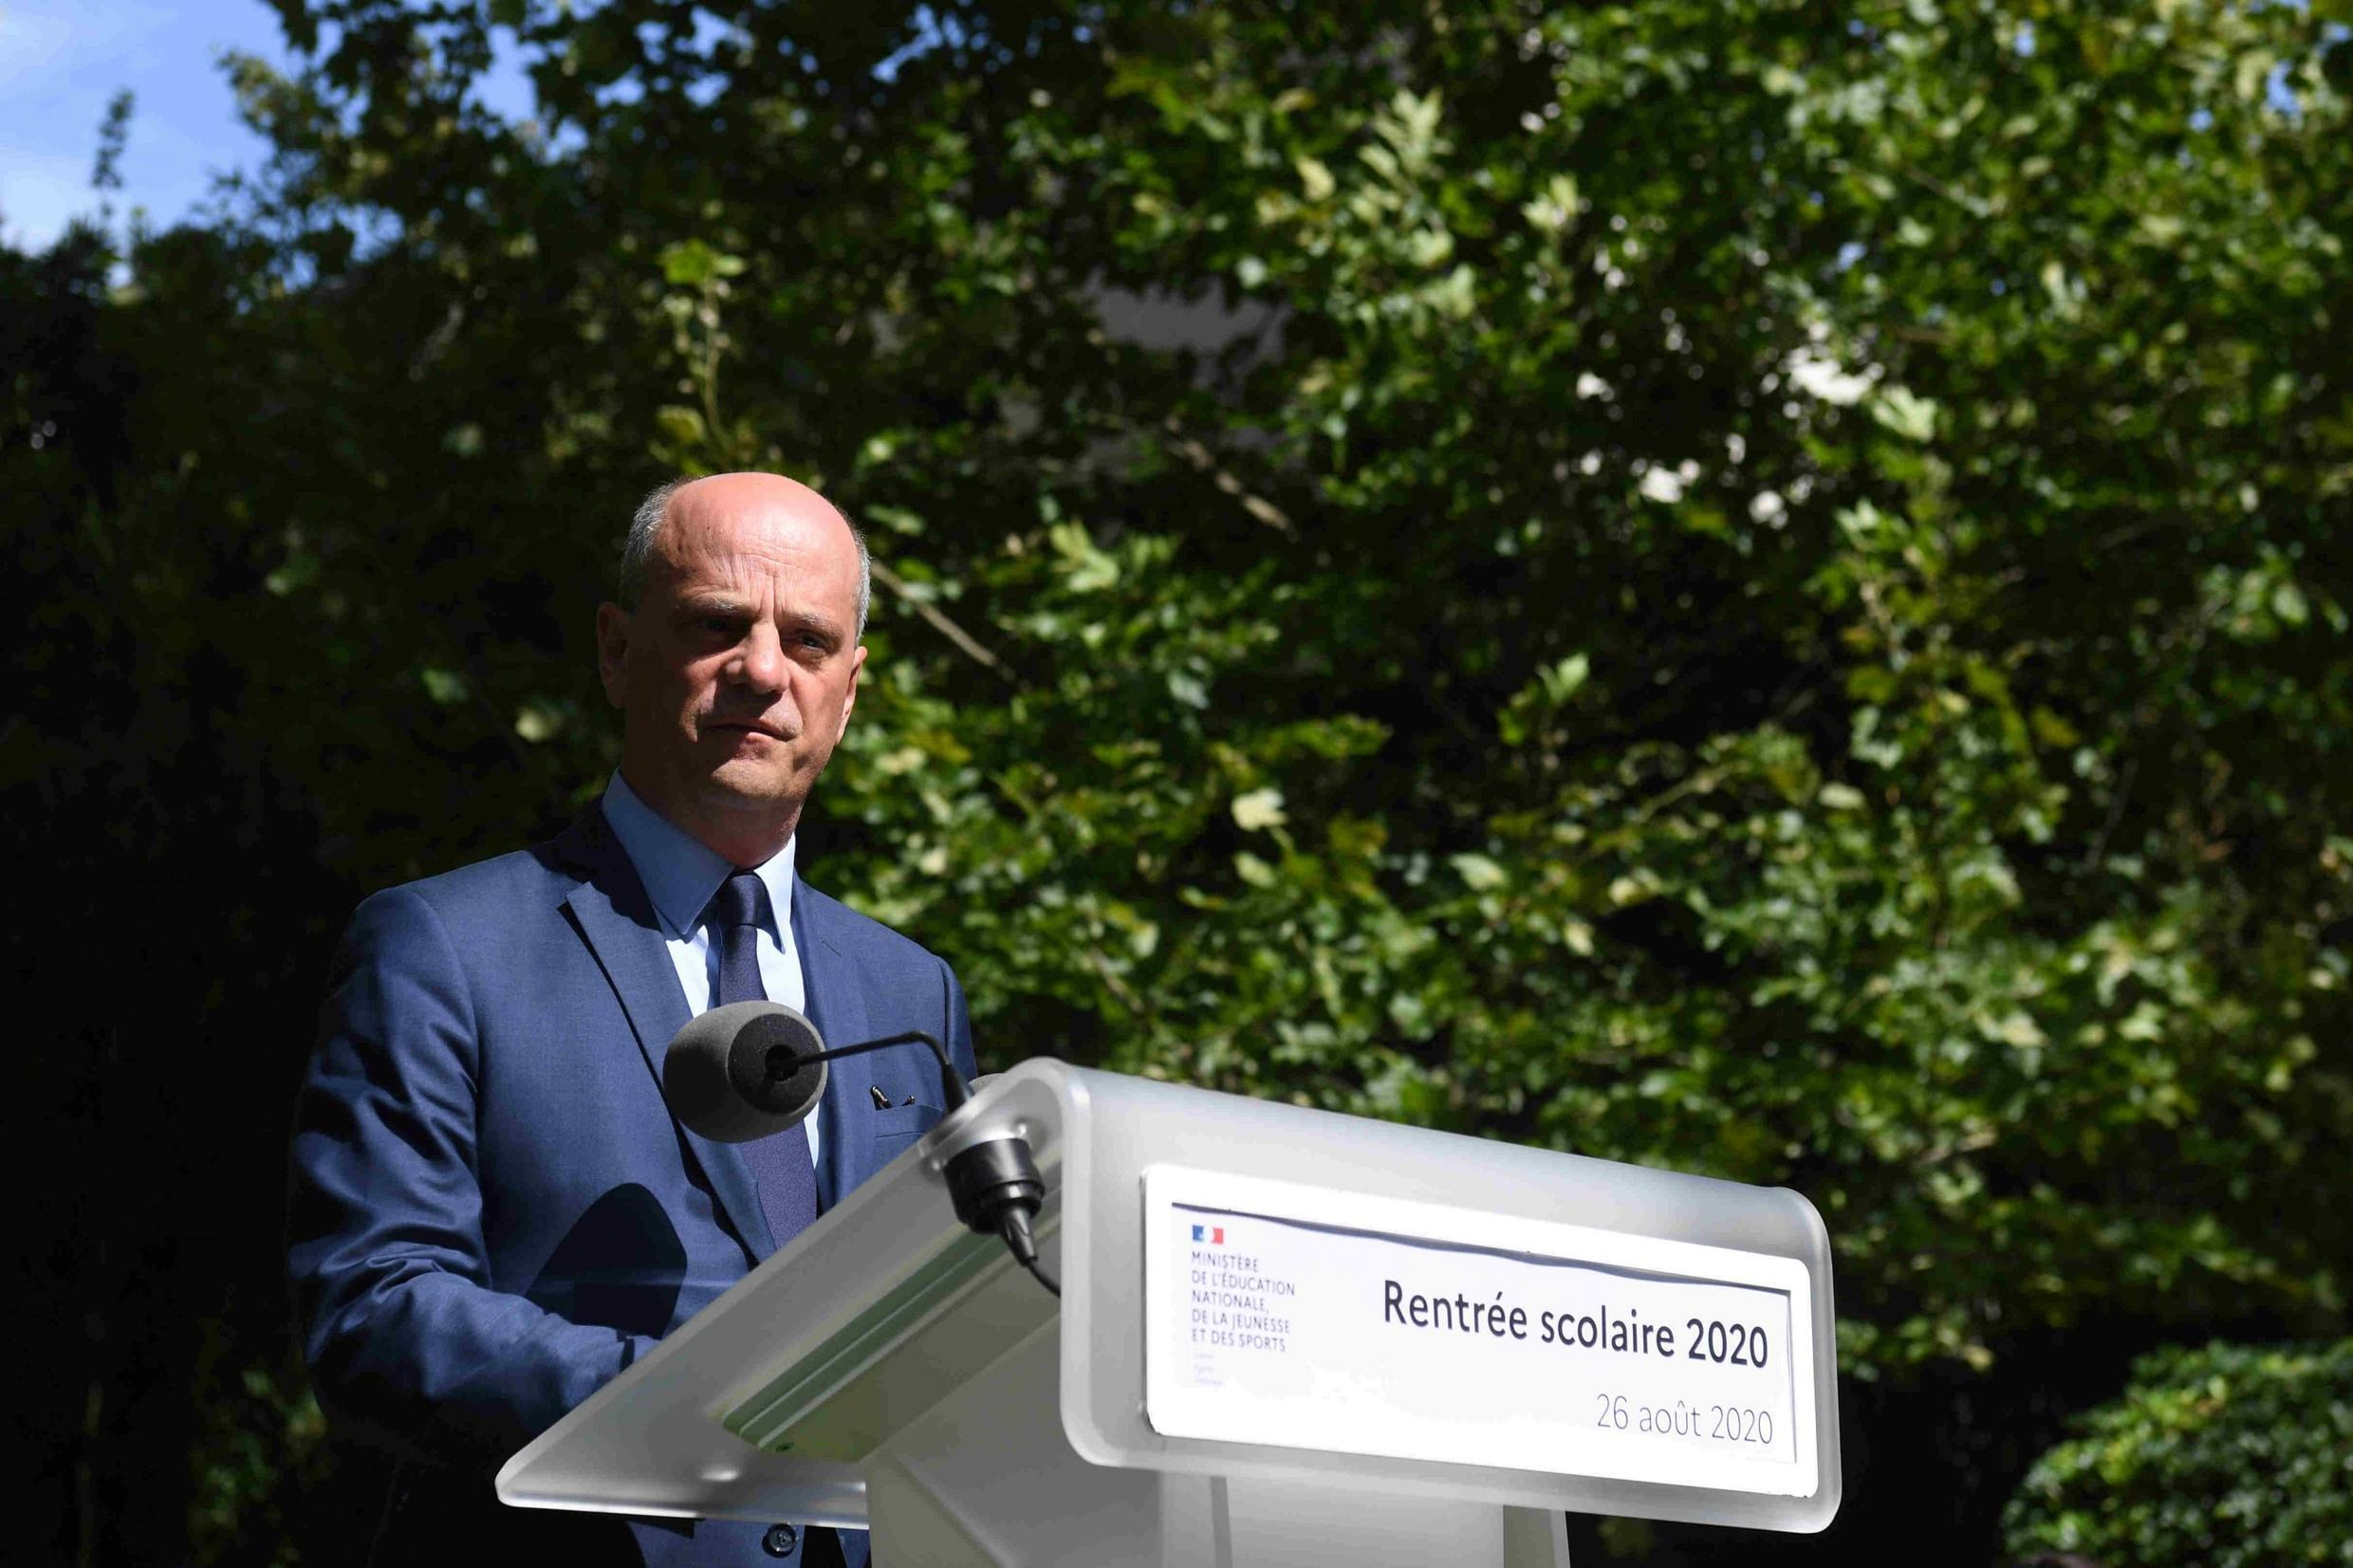 French education minister Jean-Michel Blanquer, speaking at the beginning of the school year in September 2020.